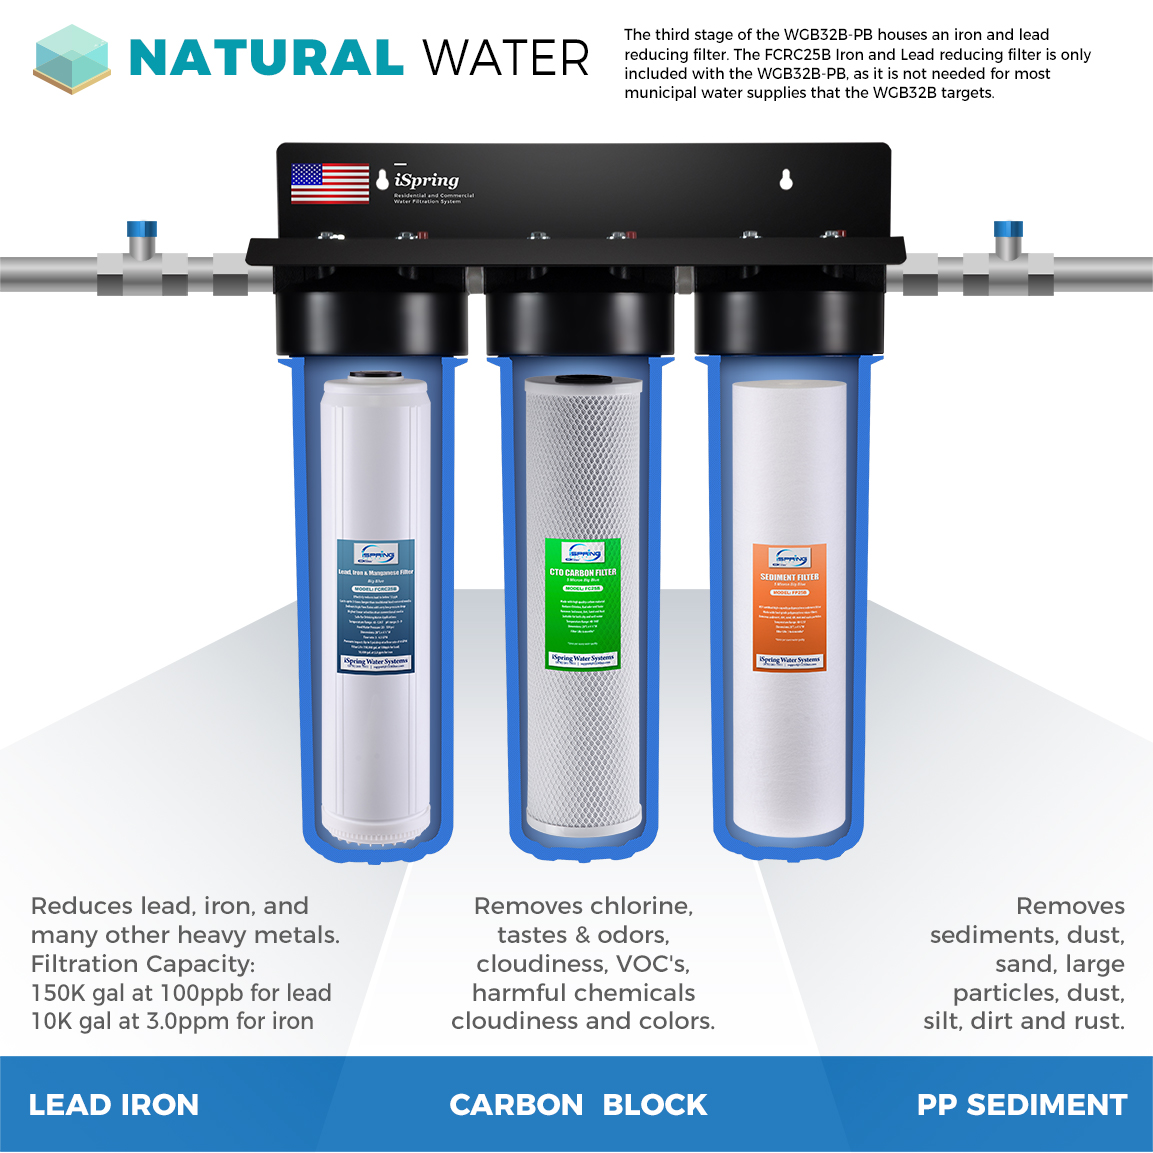 Natural water filter system Diy Ispring wgb32bpb 3stage Whole House Water Filtration System W 20 Amazoncom Ispring wgb32bpb 3stage Whole House Water Filtration System W 20